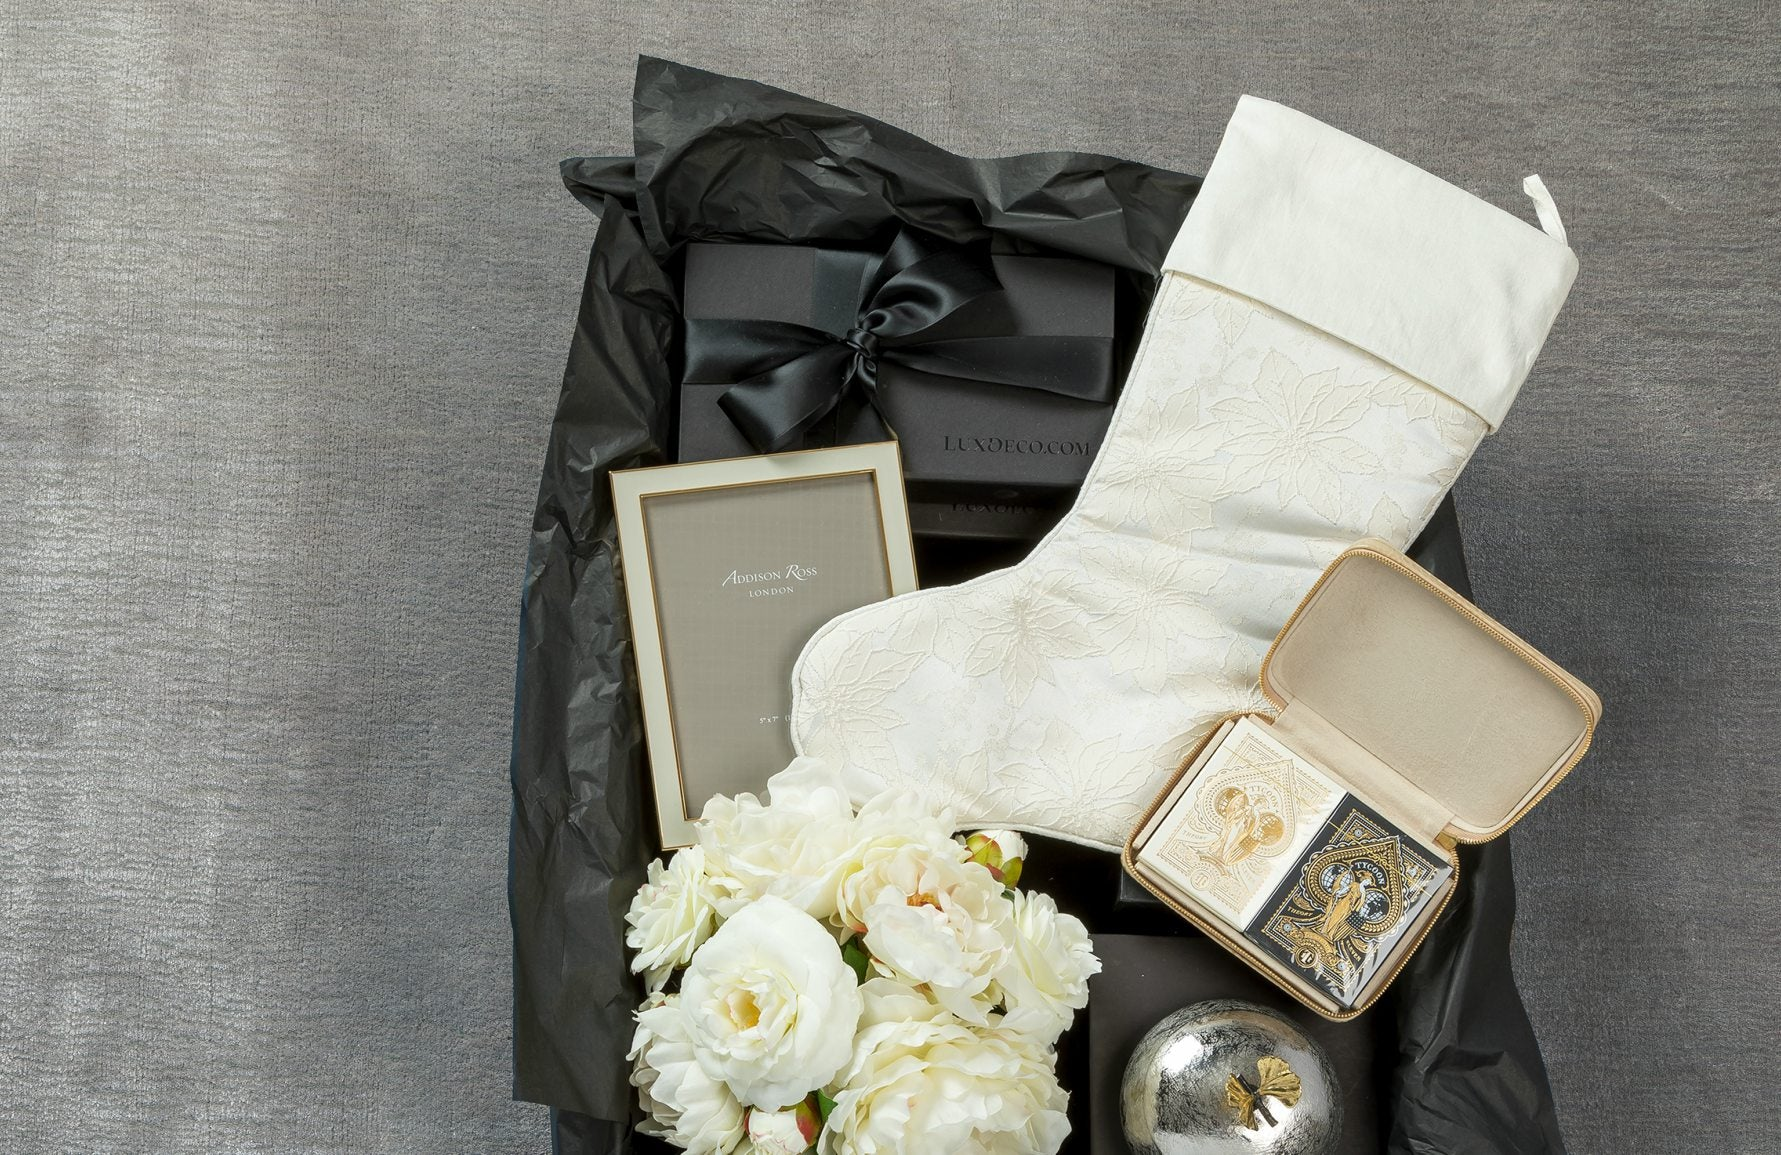 Christmas Gift Guide | Gifts for Her | Shop luxury gifts at LuxDeco.com